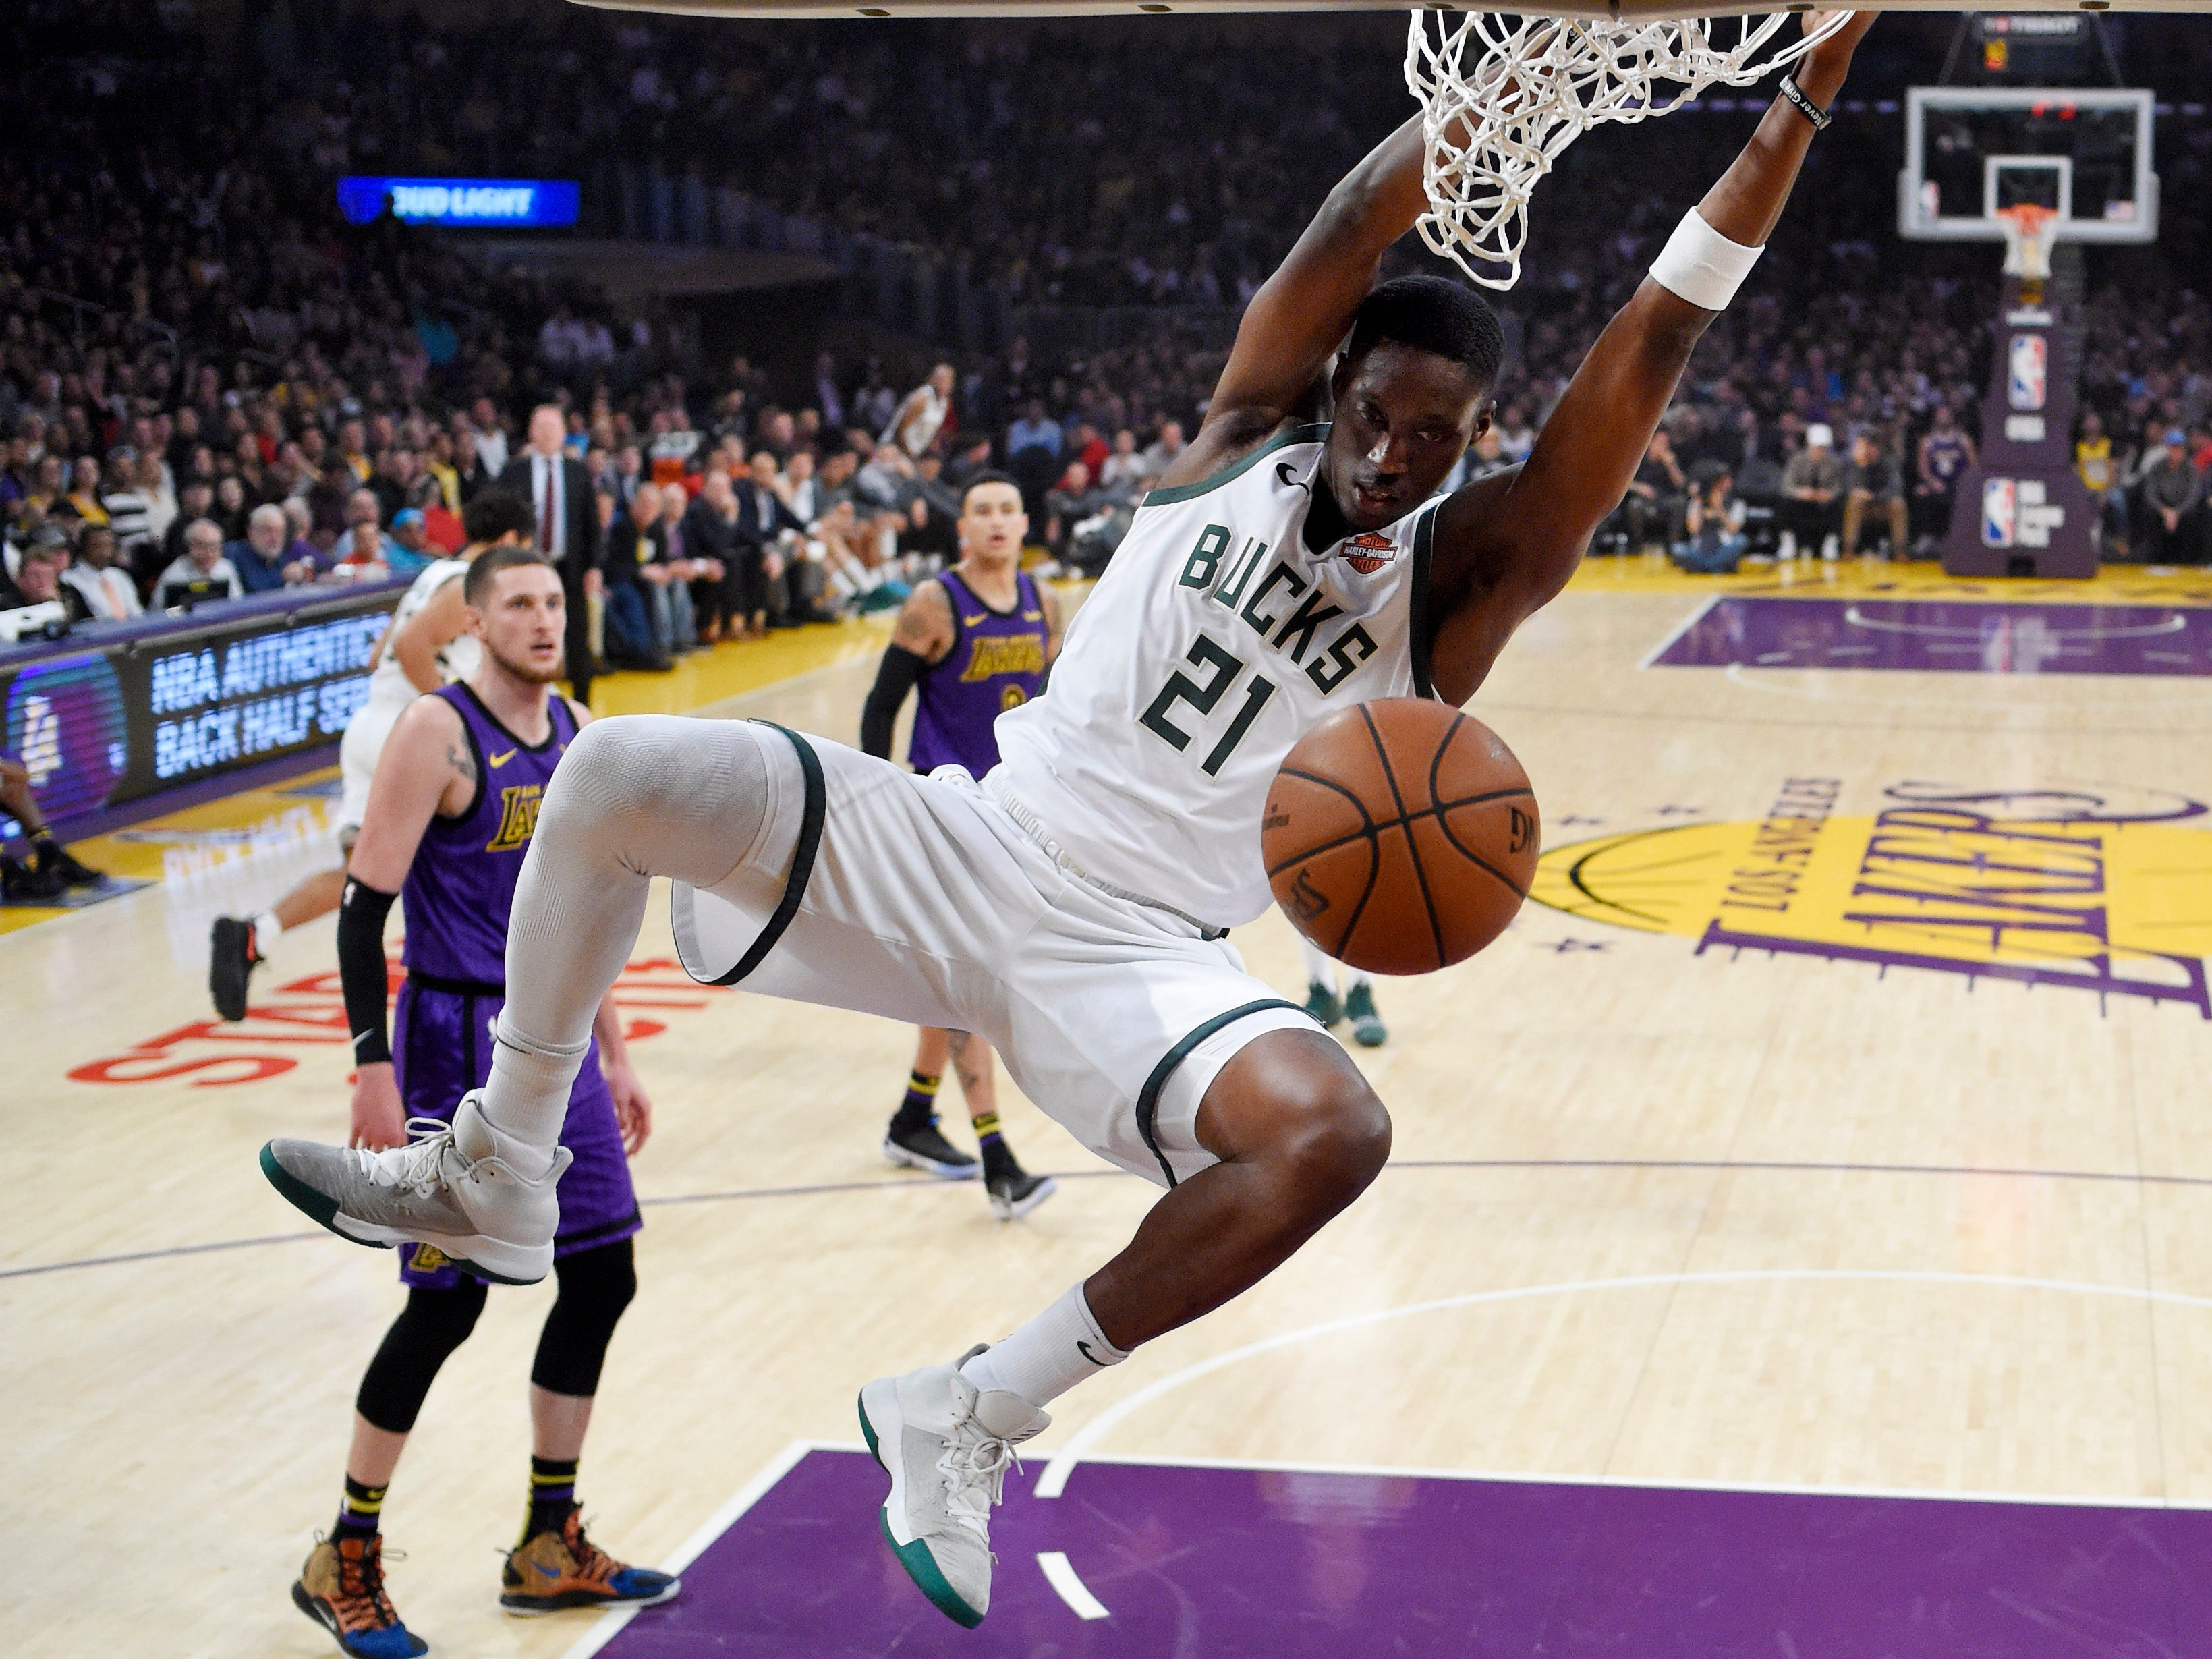 Bucks guard Tony Snell throws home a dunk against the Lakers during the first half.